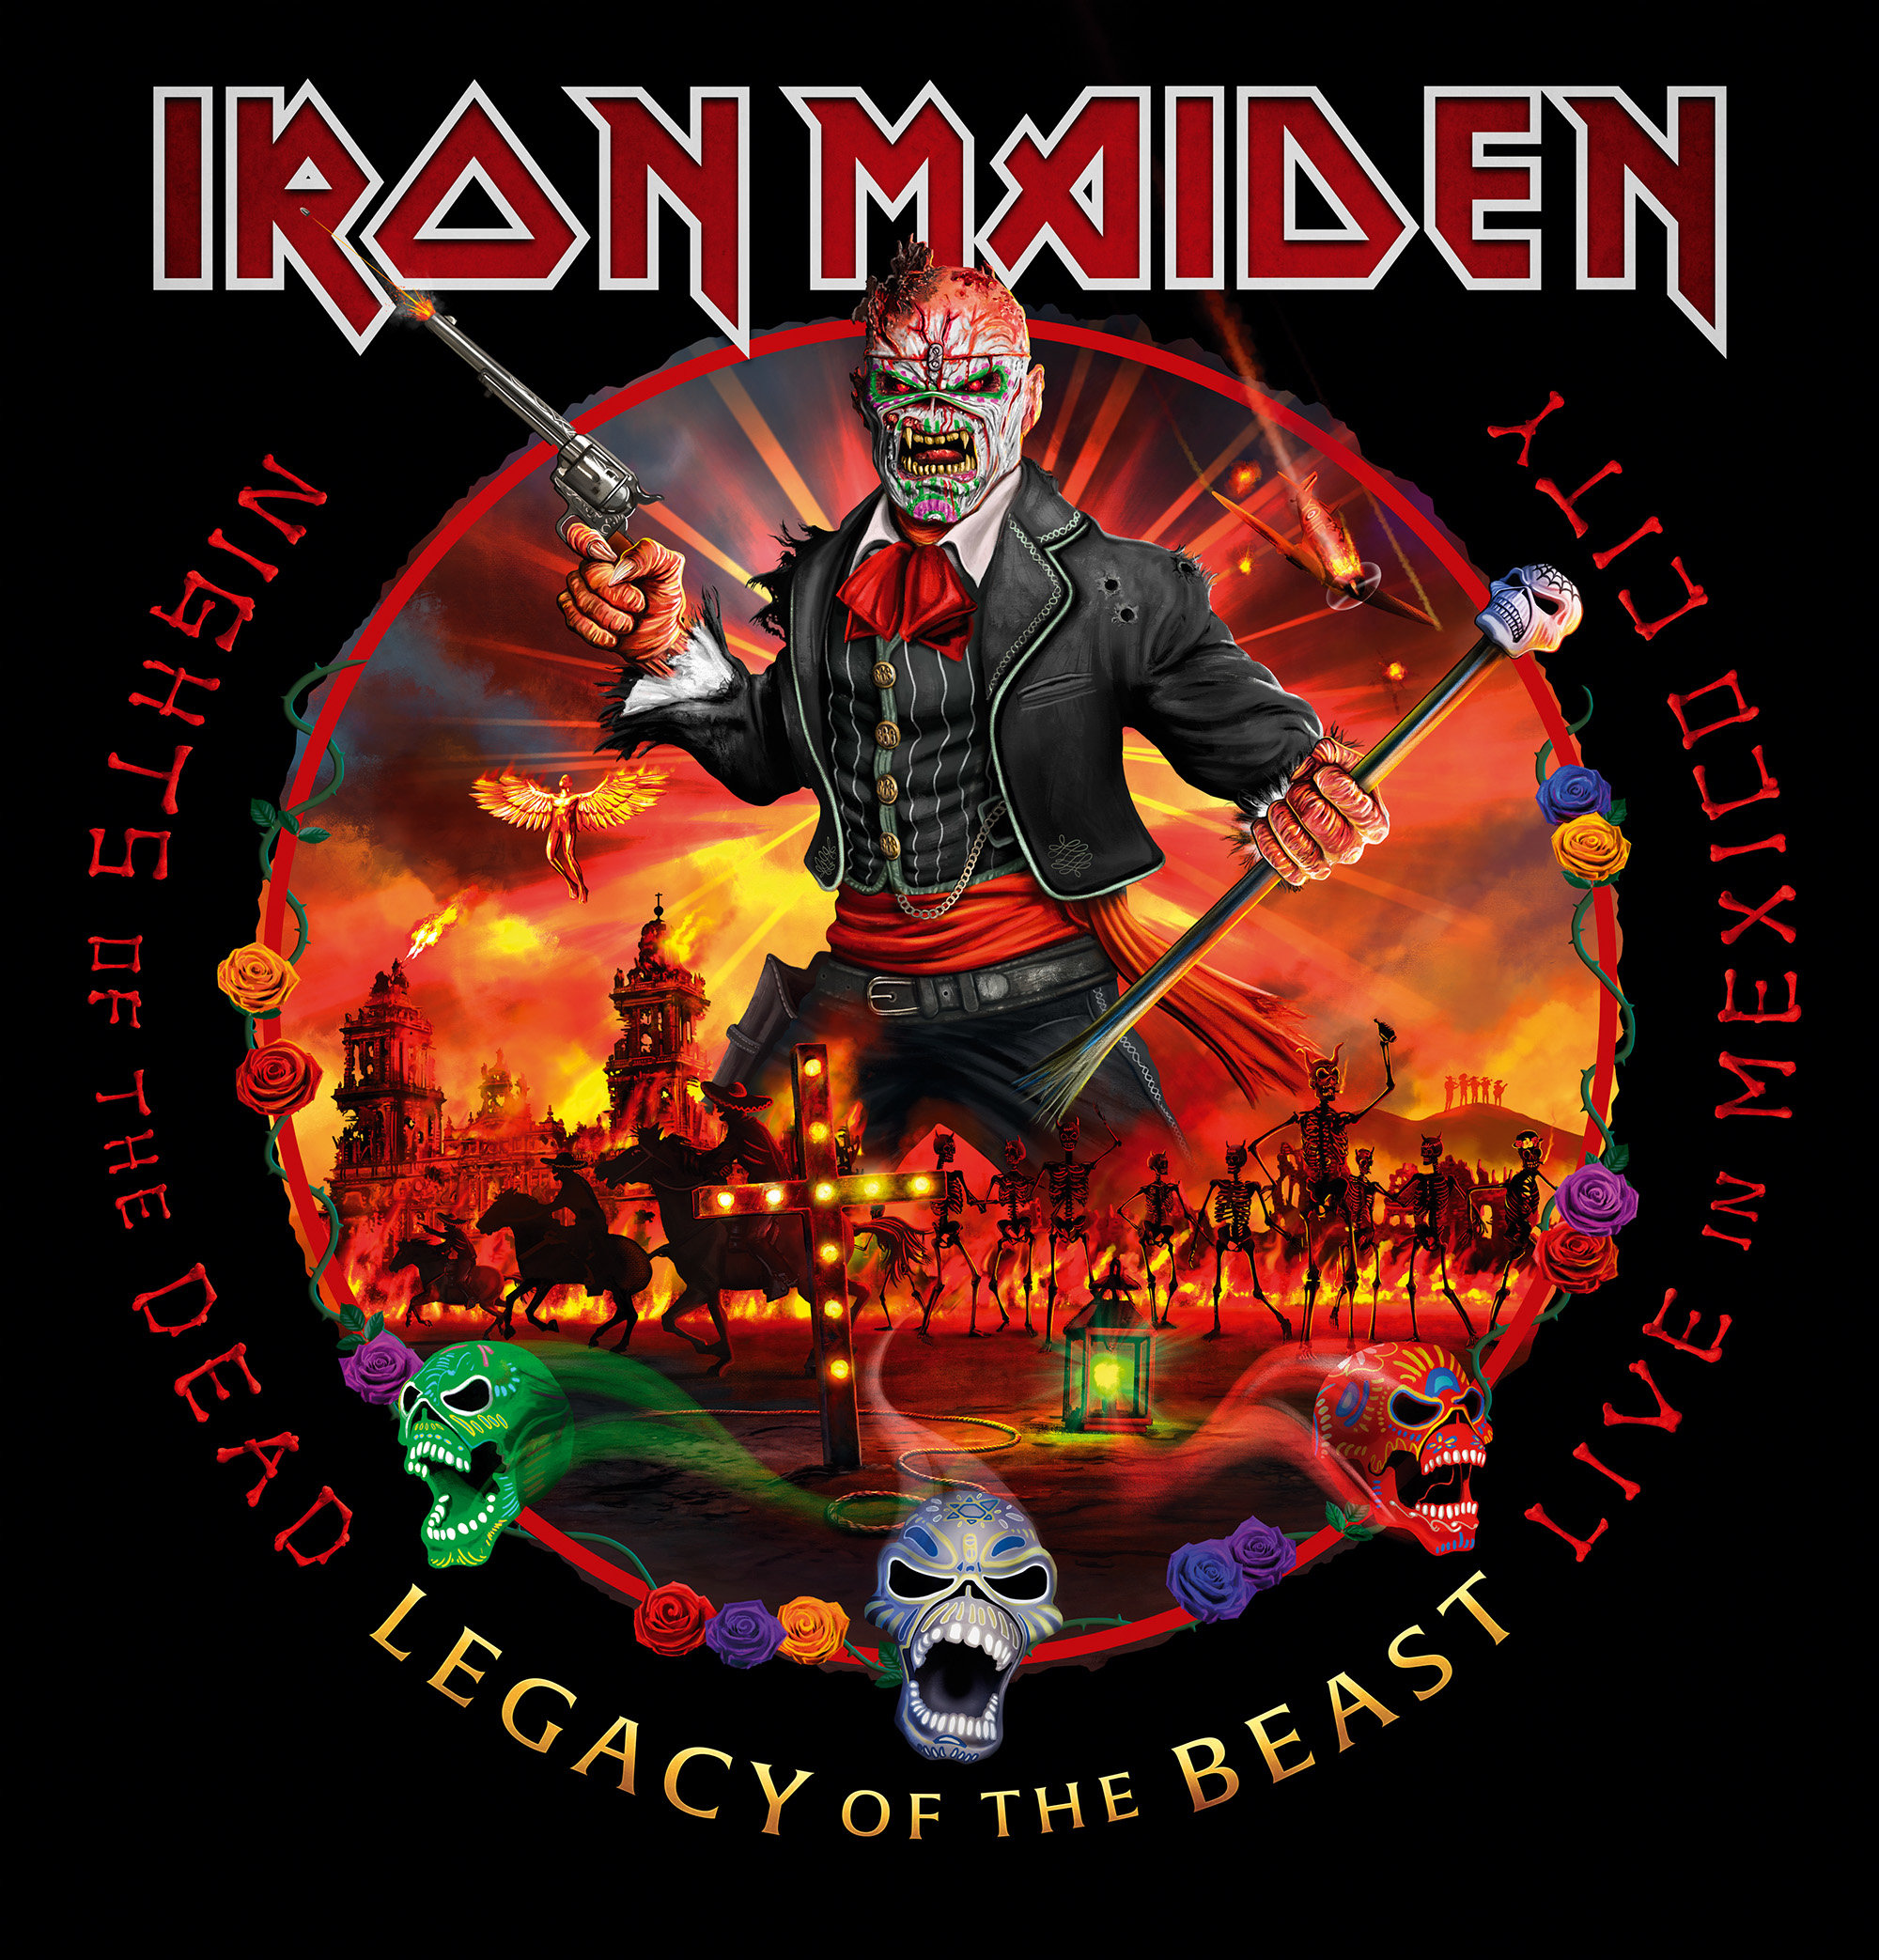 Agenda Culturel : IRON MAIDEN : Nights Of The Dead, Legacy Of The Beast : Live In Mexico City